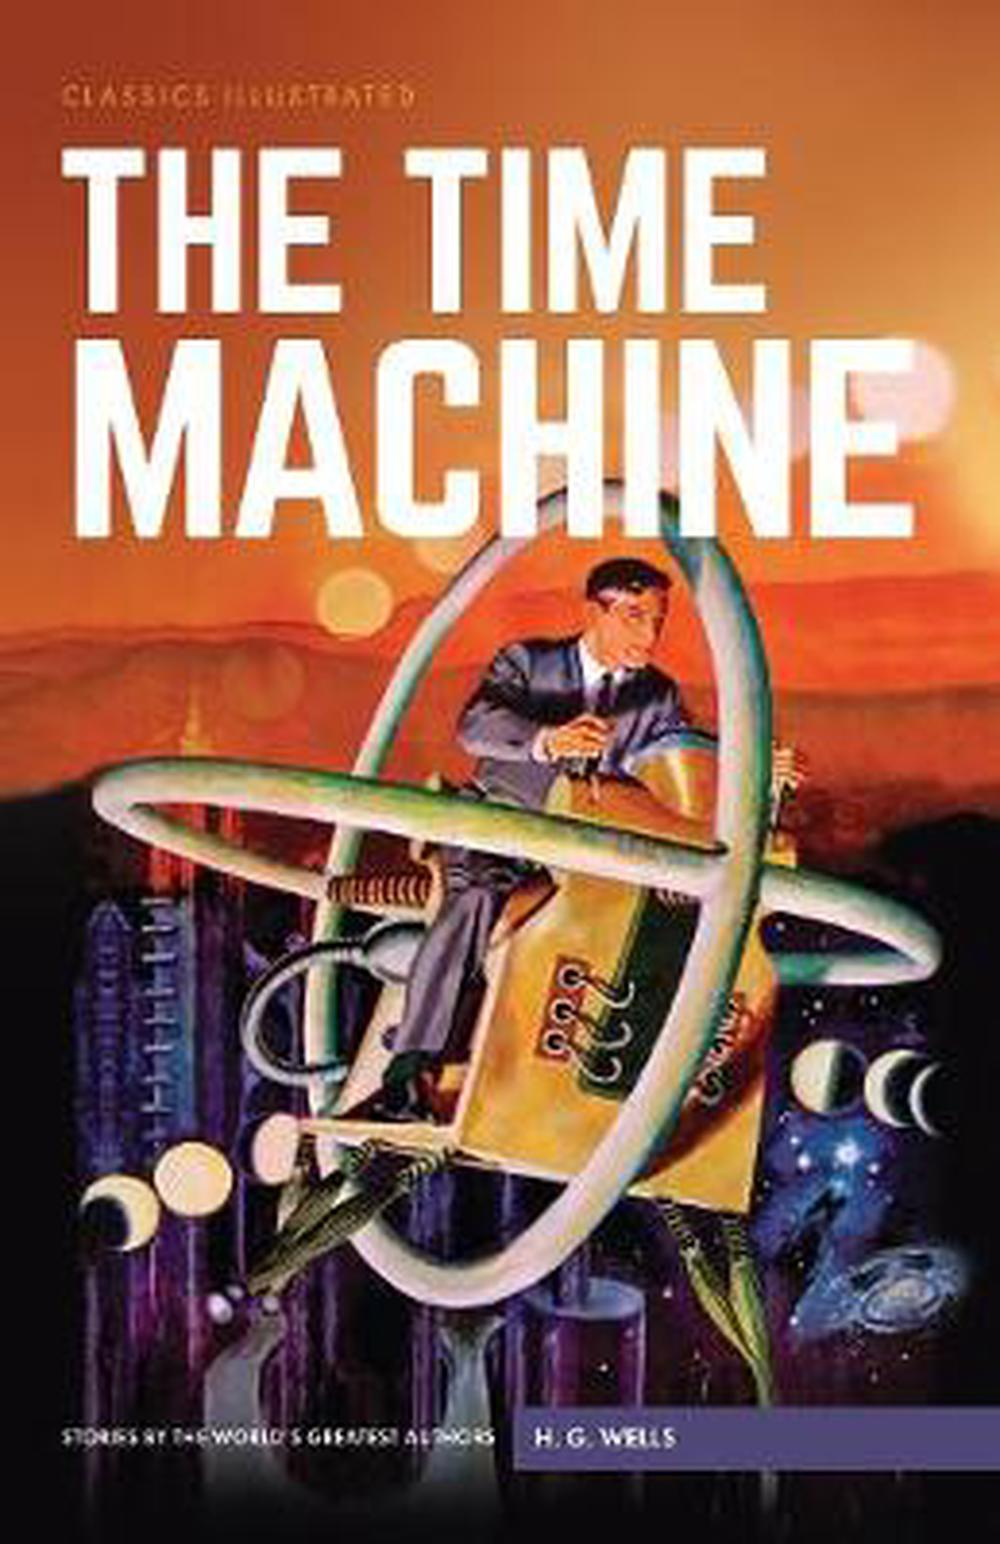 a plot review of hg wells classic story the time machine The war of the worlds is a science fiction novel by english author h g wells first serialised in 1897 by pearson's magazine in the uk and by cosmopolitan magazine in the us the novel's first appearance in hardcover was in 1898 from publisher william heinemann of london.